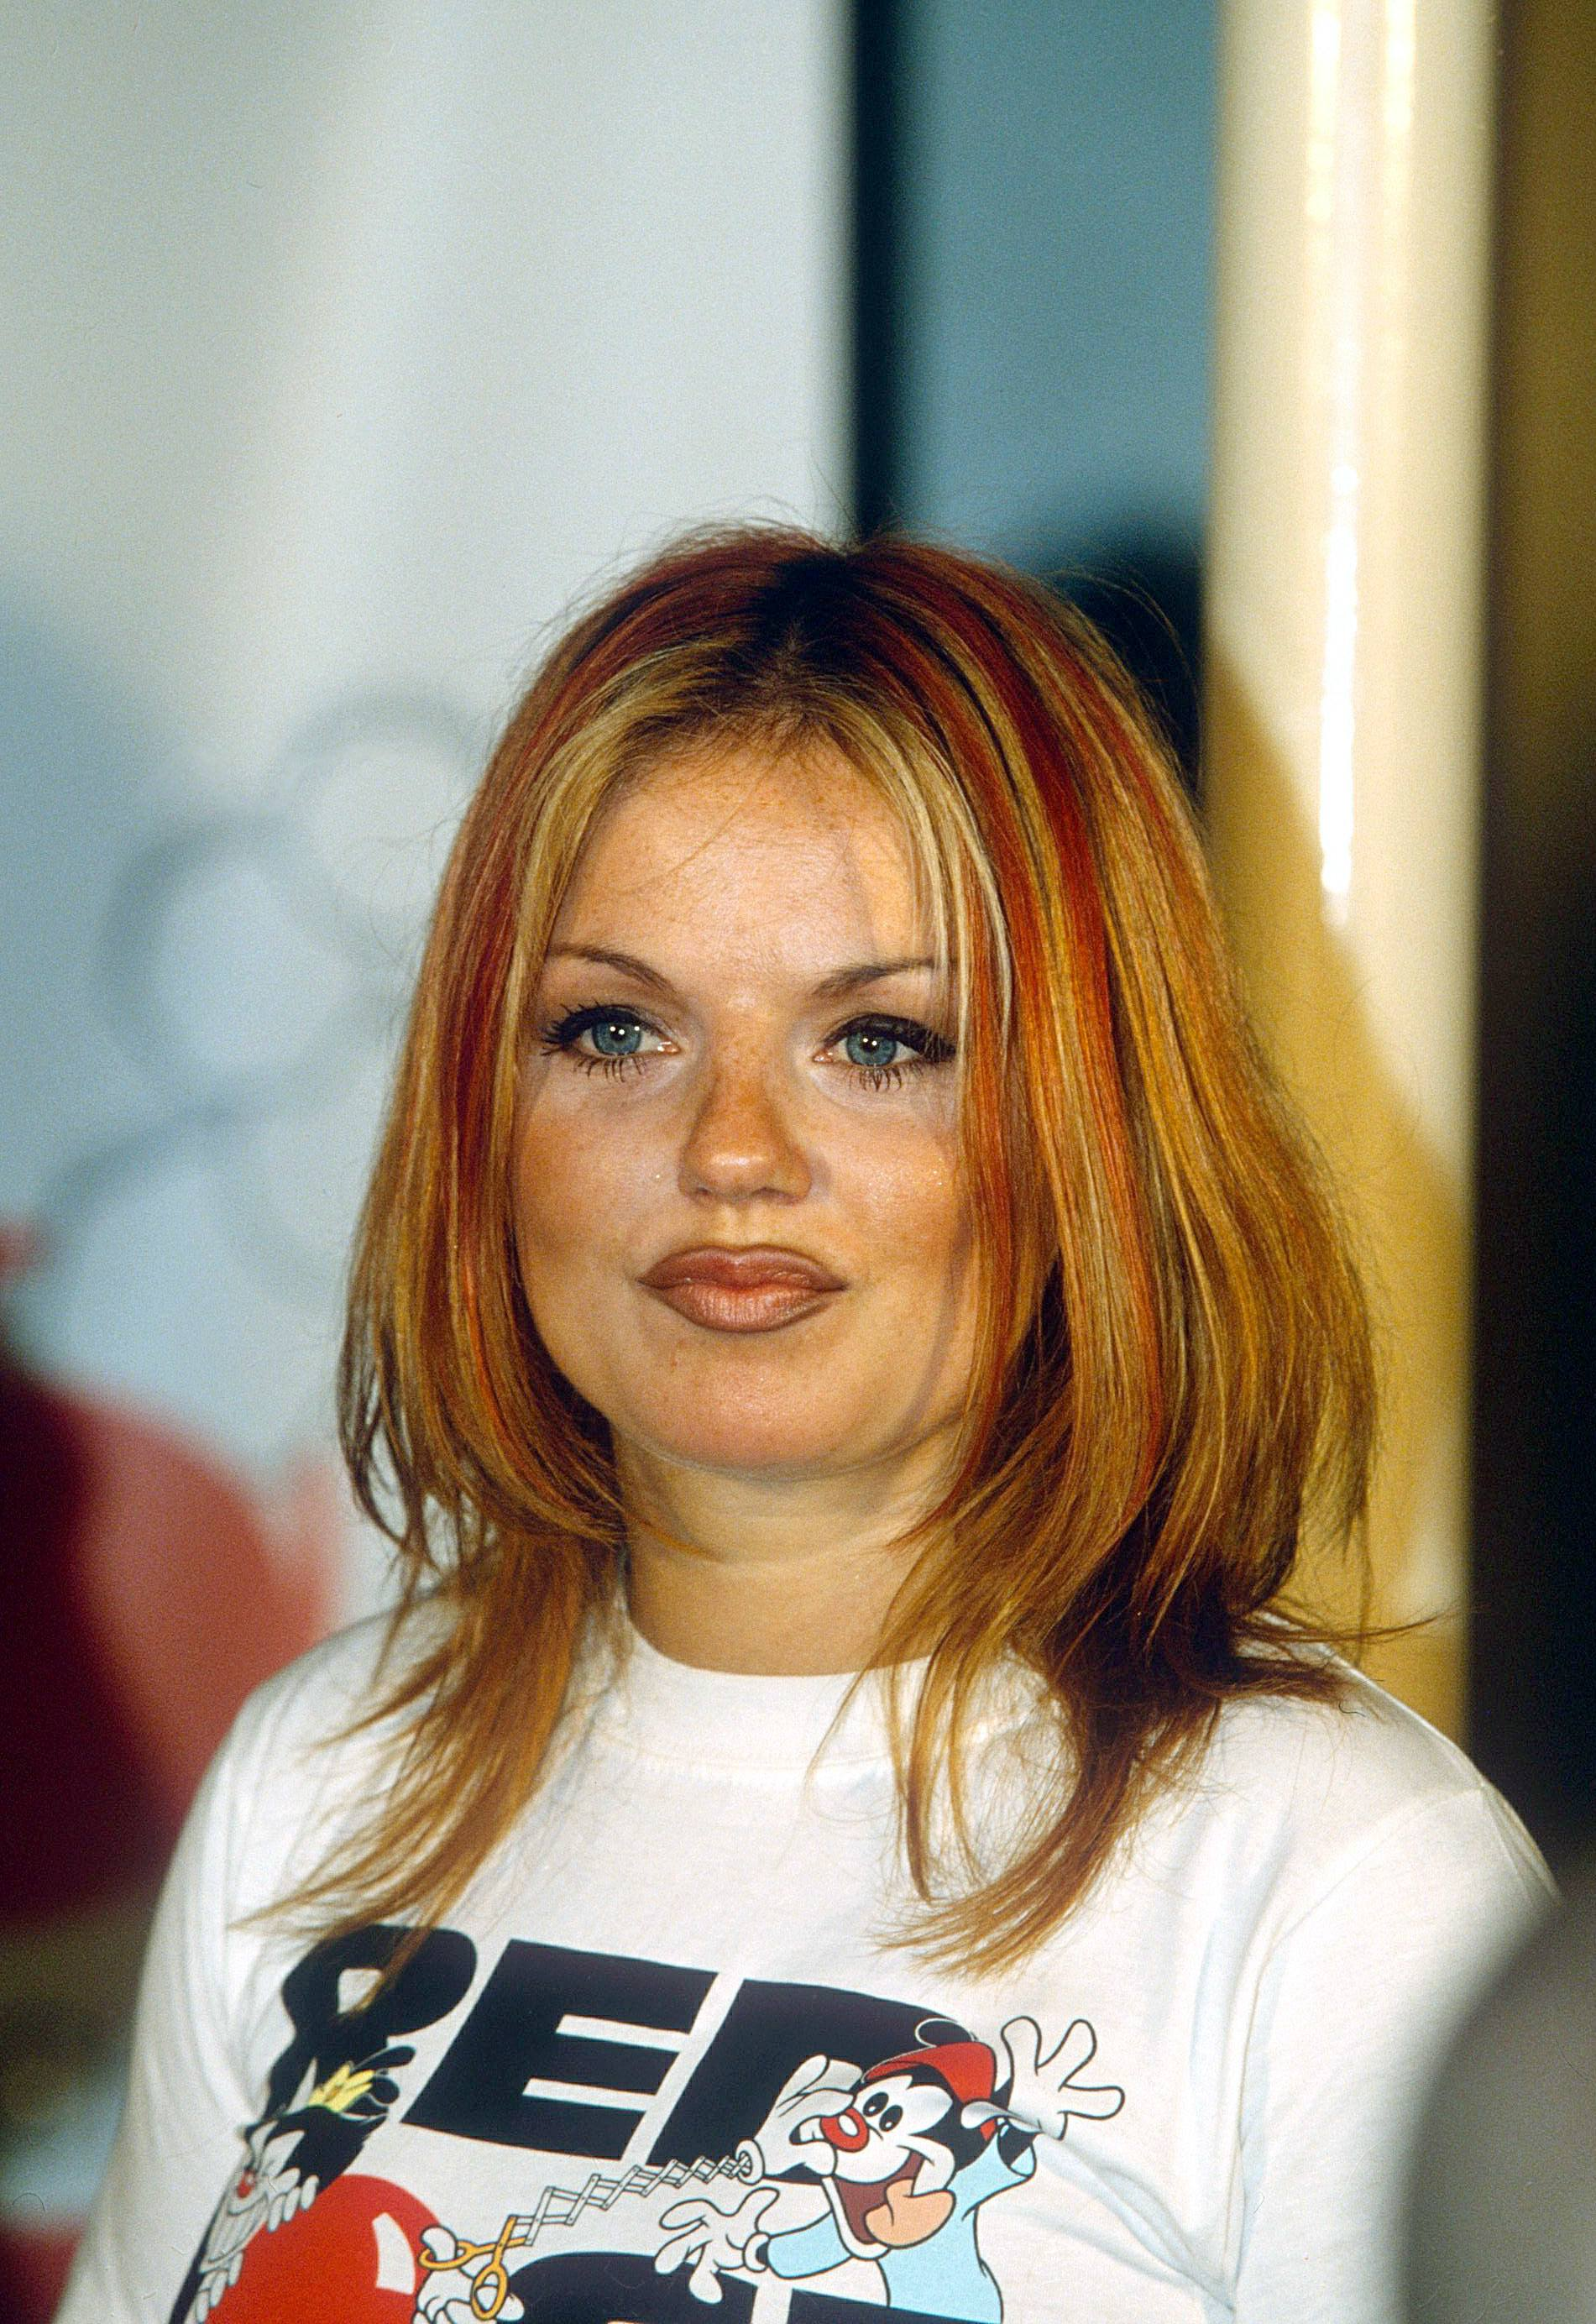 Famous redheads: Geri Halliwell with straight medium length giner hair with blonde highlights wearing a white t-shirt.